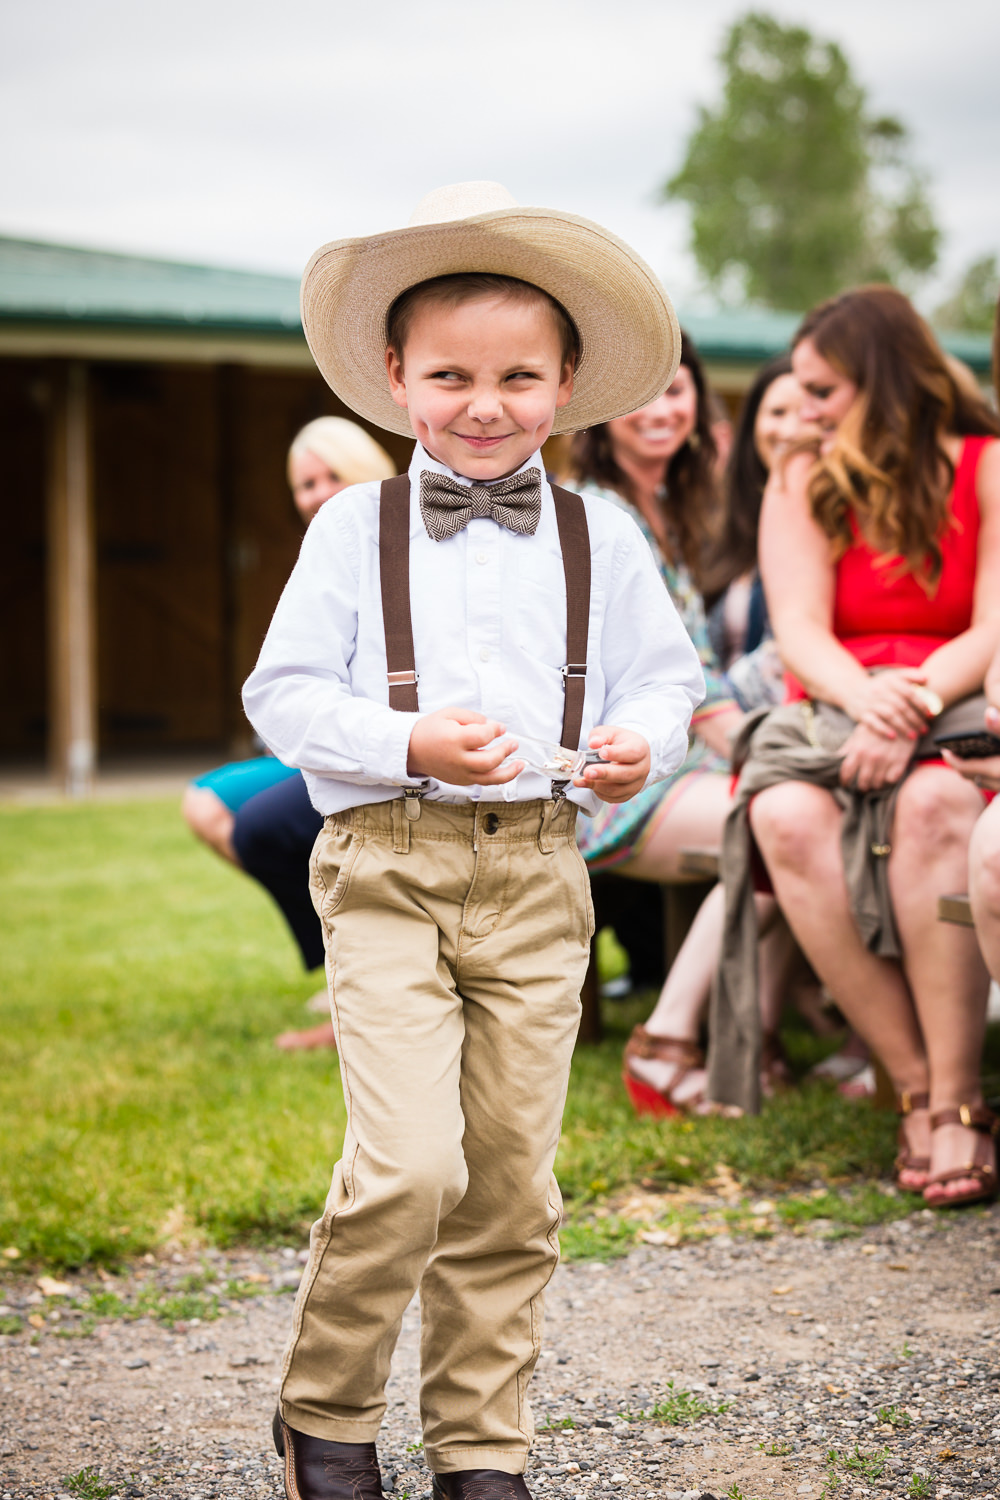 bozeman-hart-ranch-wedding-ring-bearer-processional.jpg